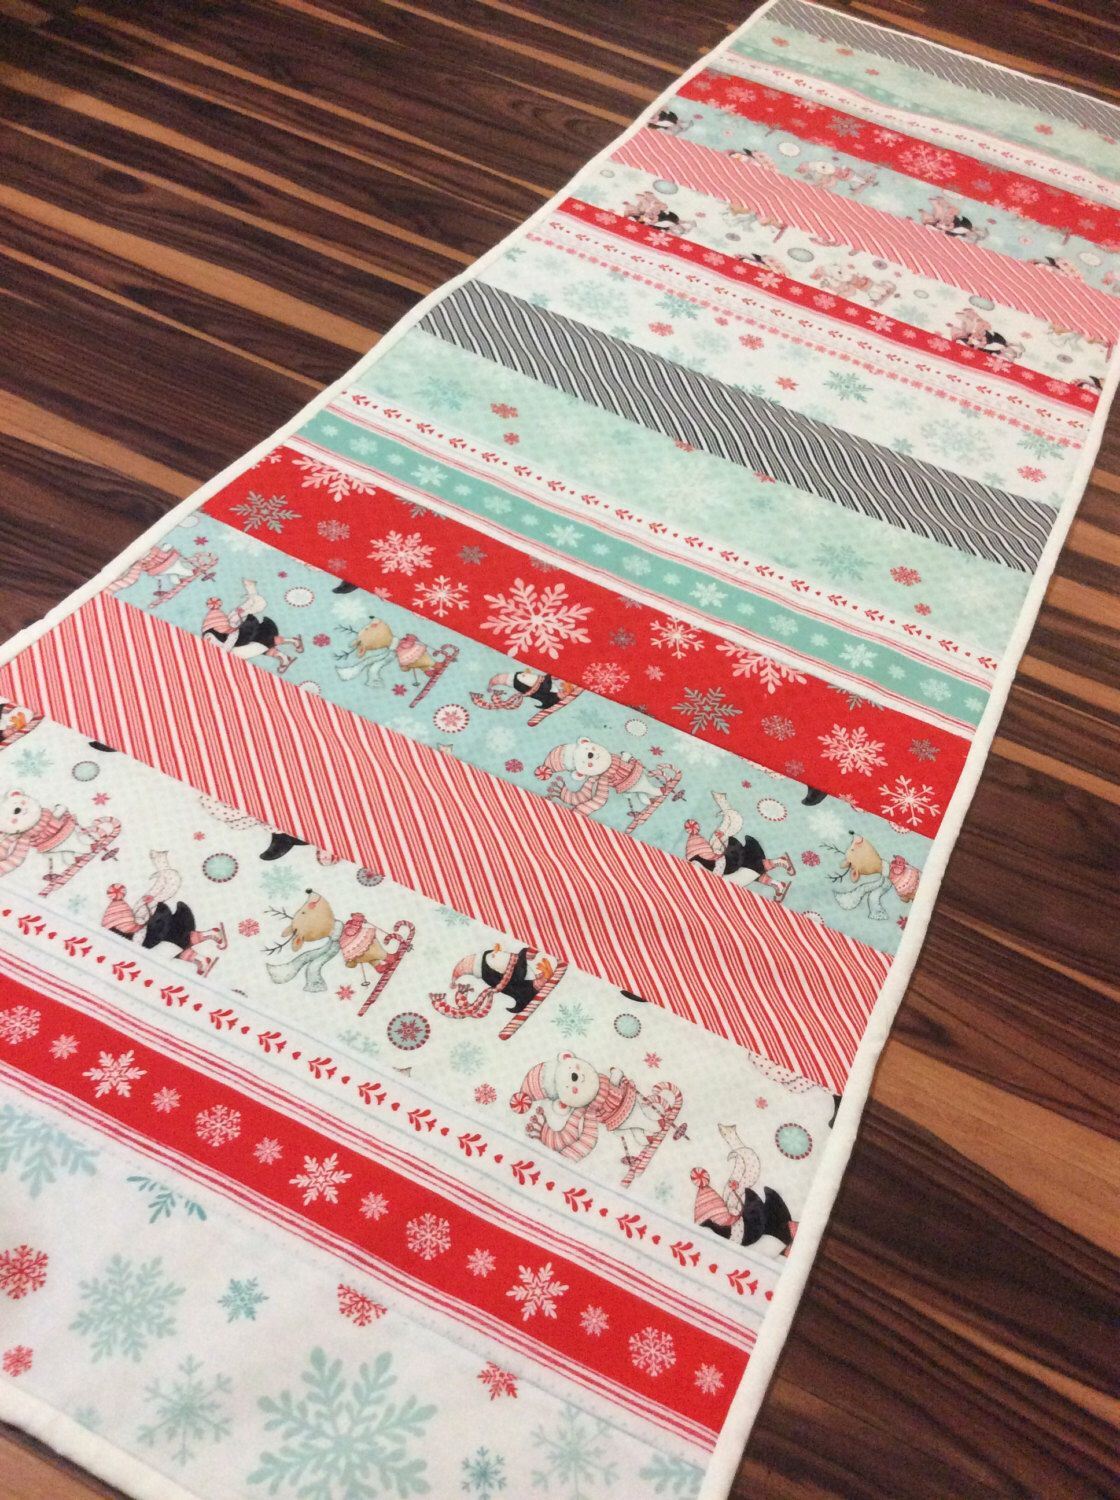 Christmas Novelty Table Runner Table Topper Extra Long In Red Teal And White Handmade Homemade Quilt Quilted Homemade Quilts Table Runners Table Toppers